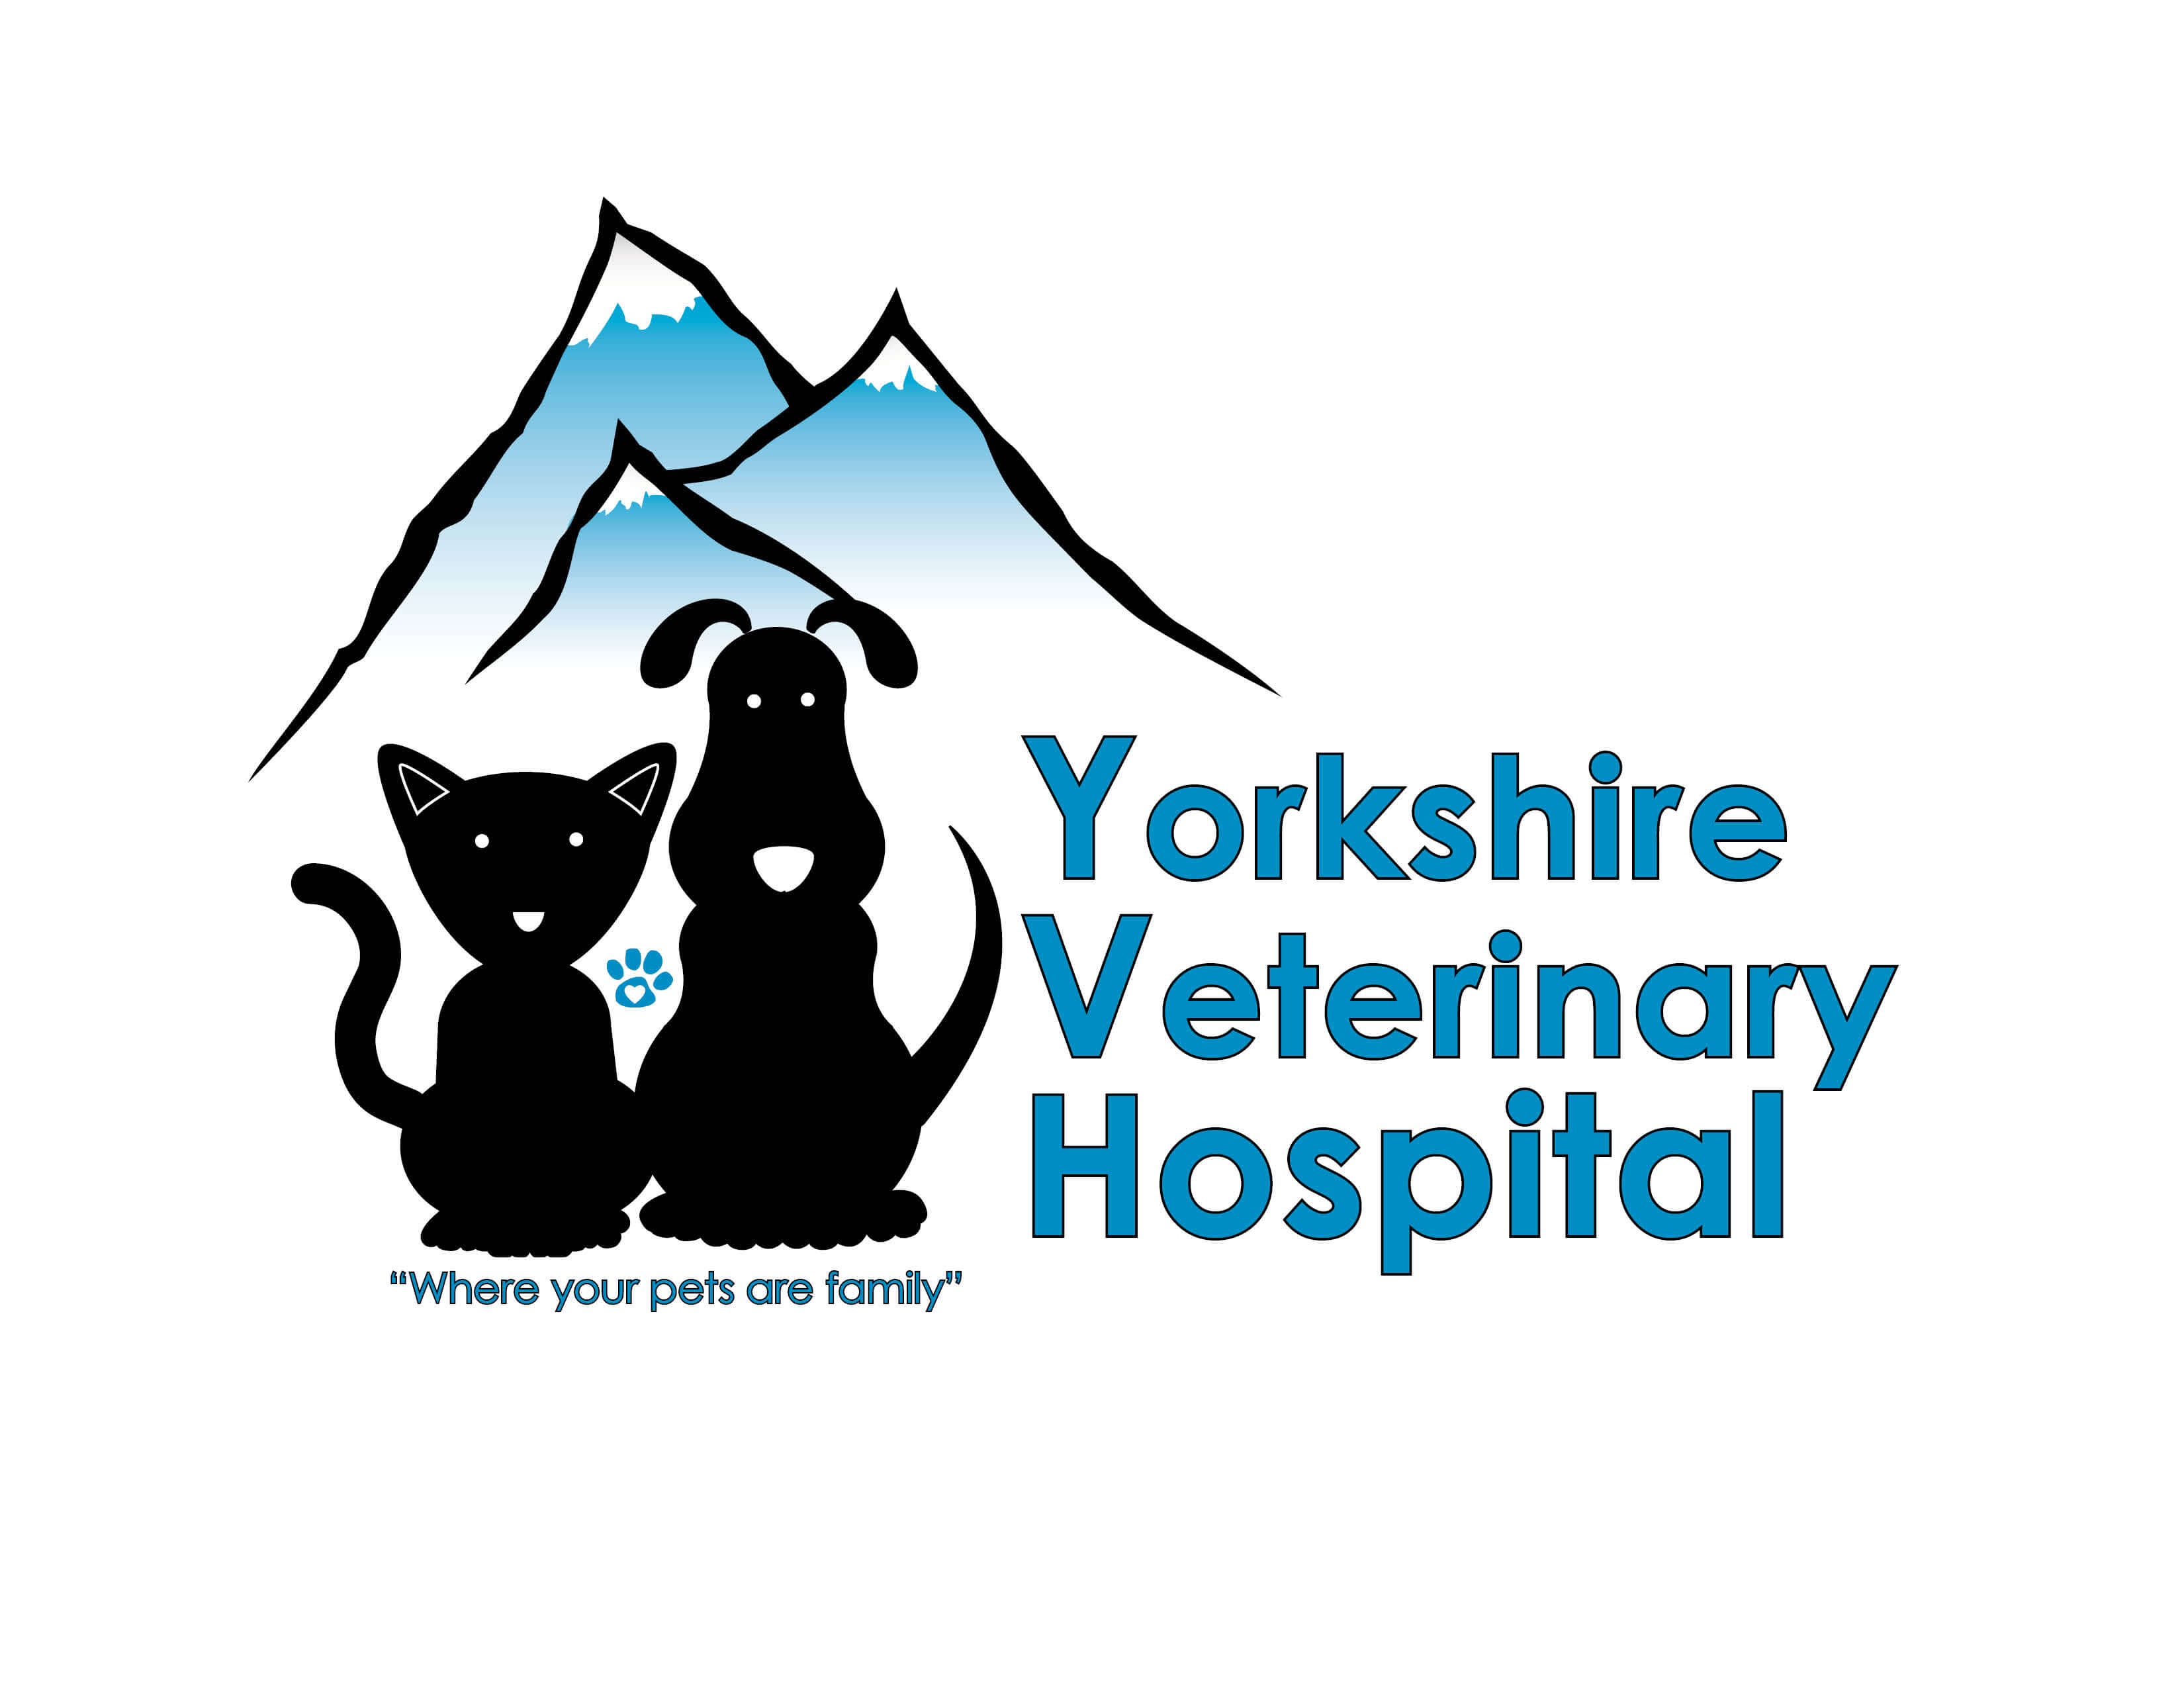 Yorkshire Veterinary Hospital